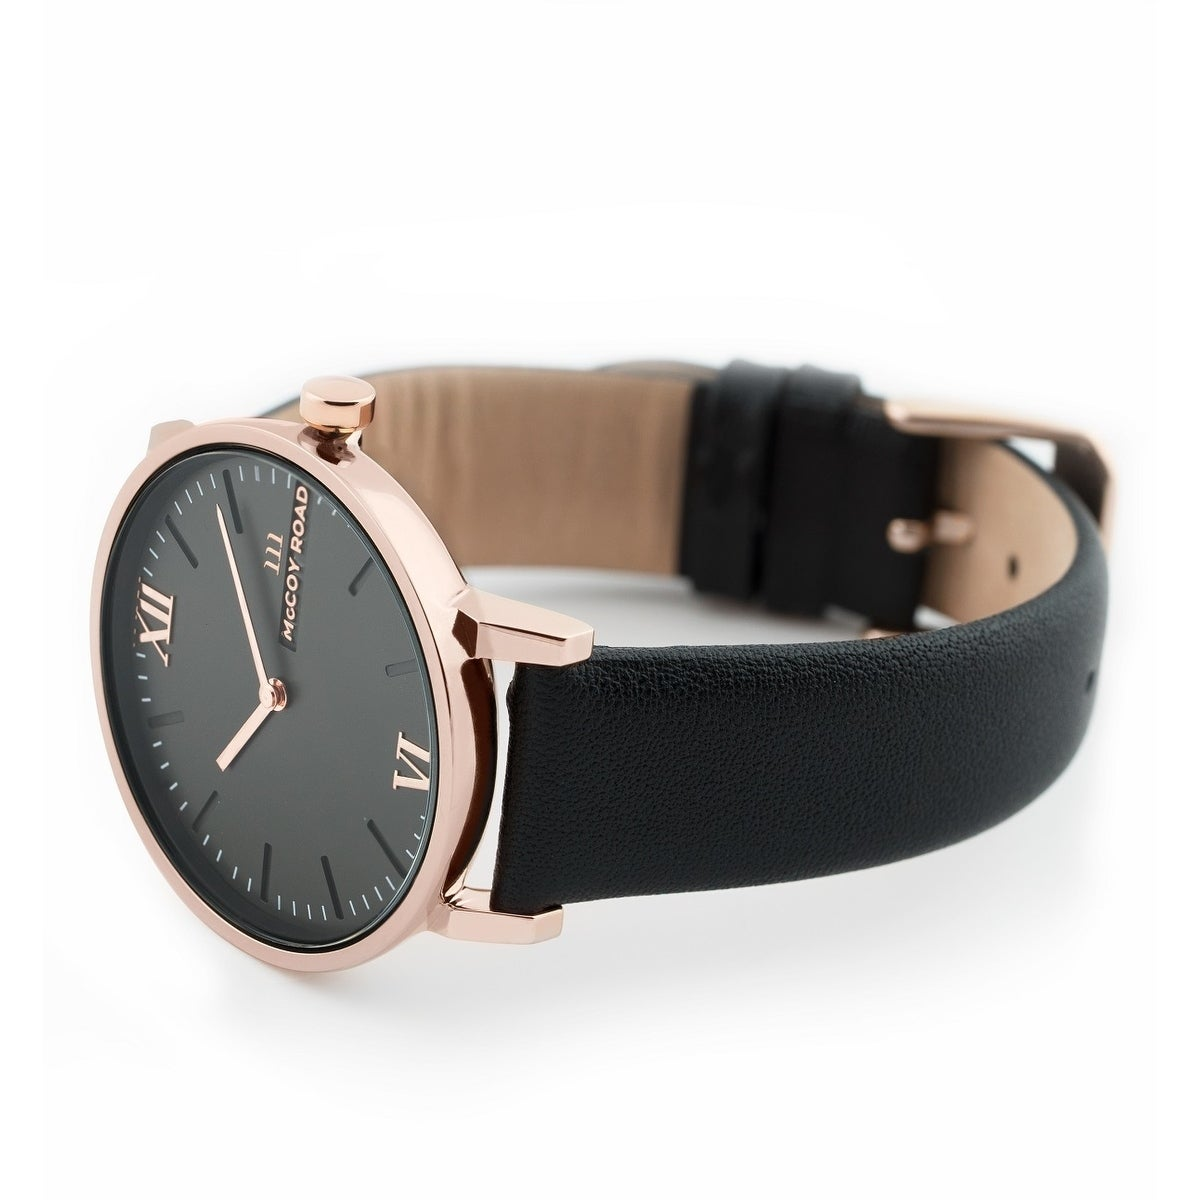 7b9fd7680156f Shop McCoy Road  Seven50  Stainless Steel Rose Gold Tone and Black Leather  Strap Watch - Free Shipping Today - Overstock - 24126809